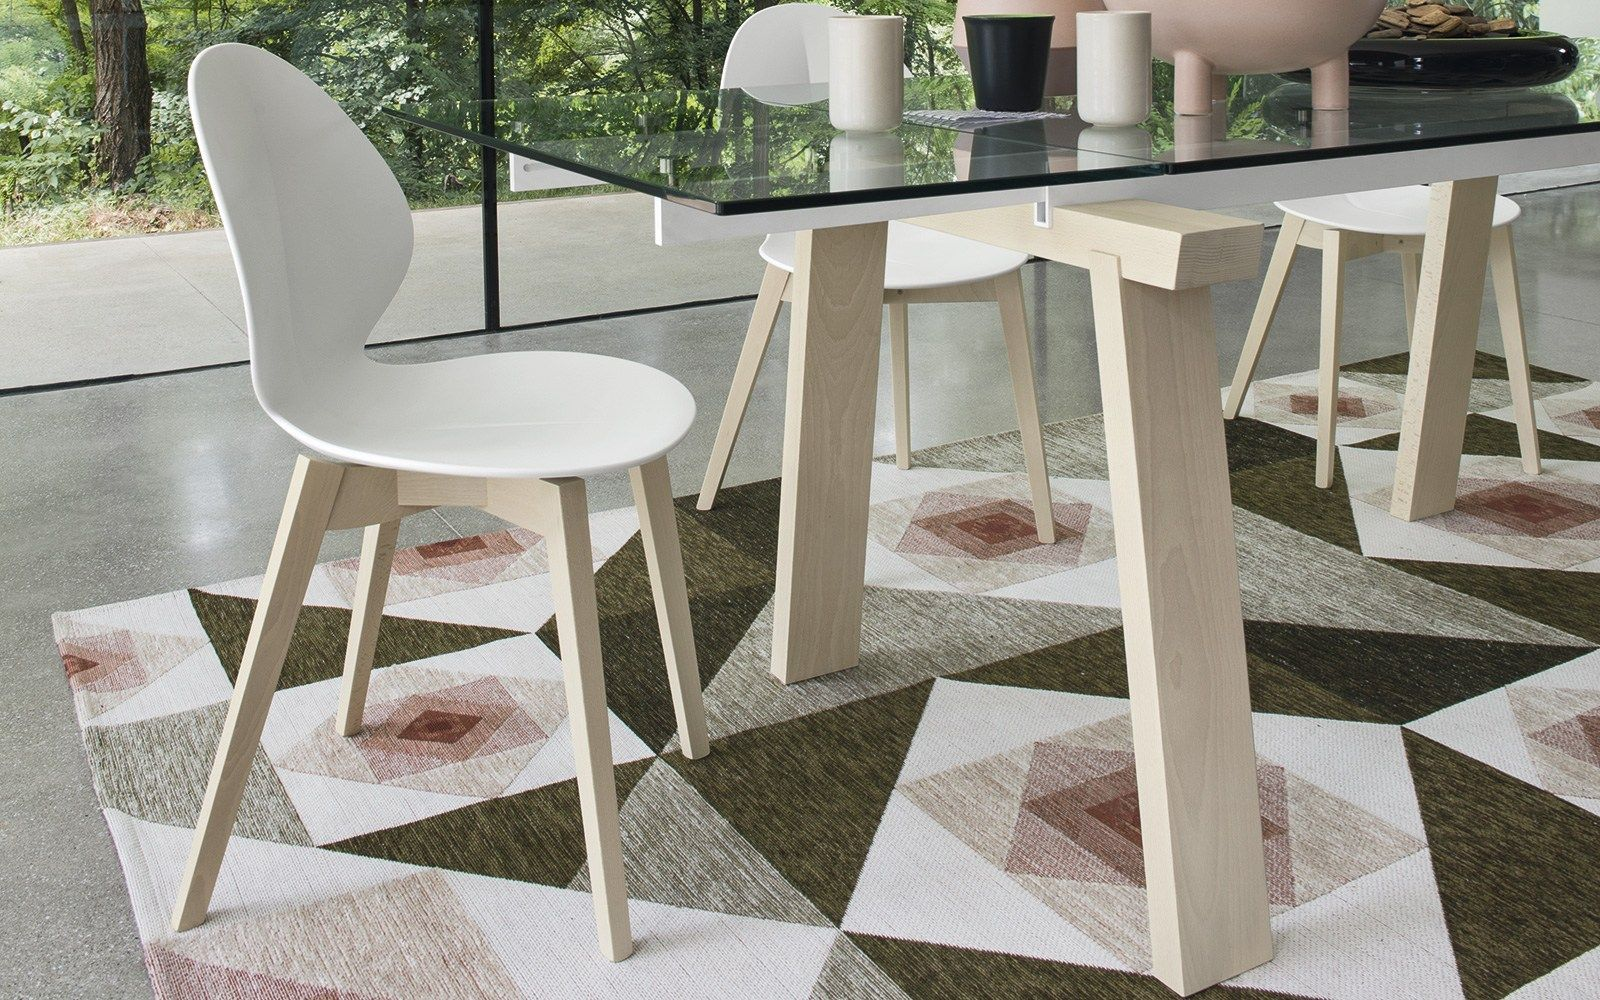 Basil Polypropylene Chair By Calligaris Design Mrsmith Studio Wooden Dining Chairs Calligaris Glass Dining Table